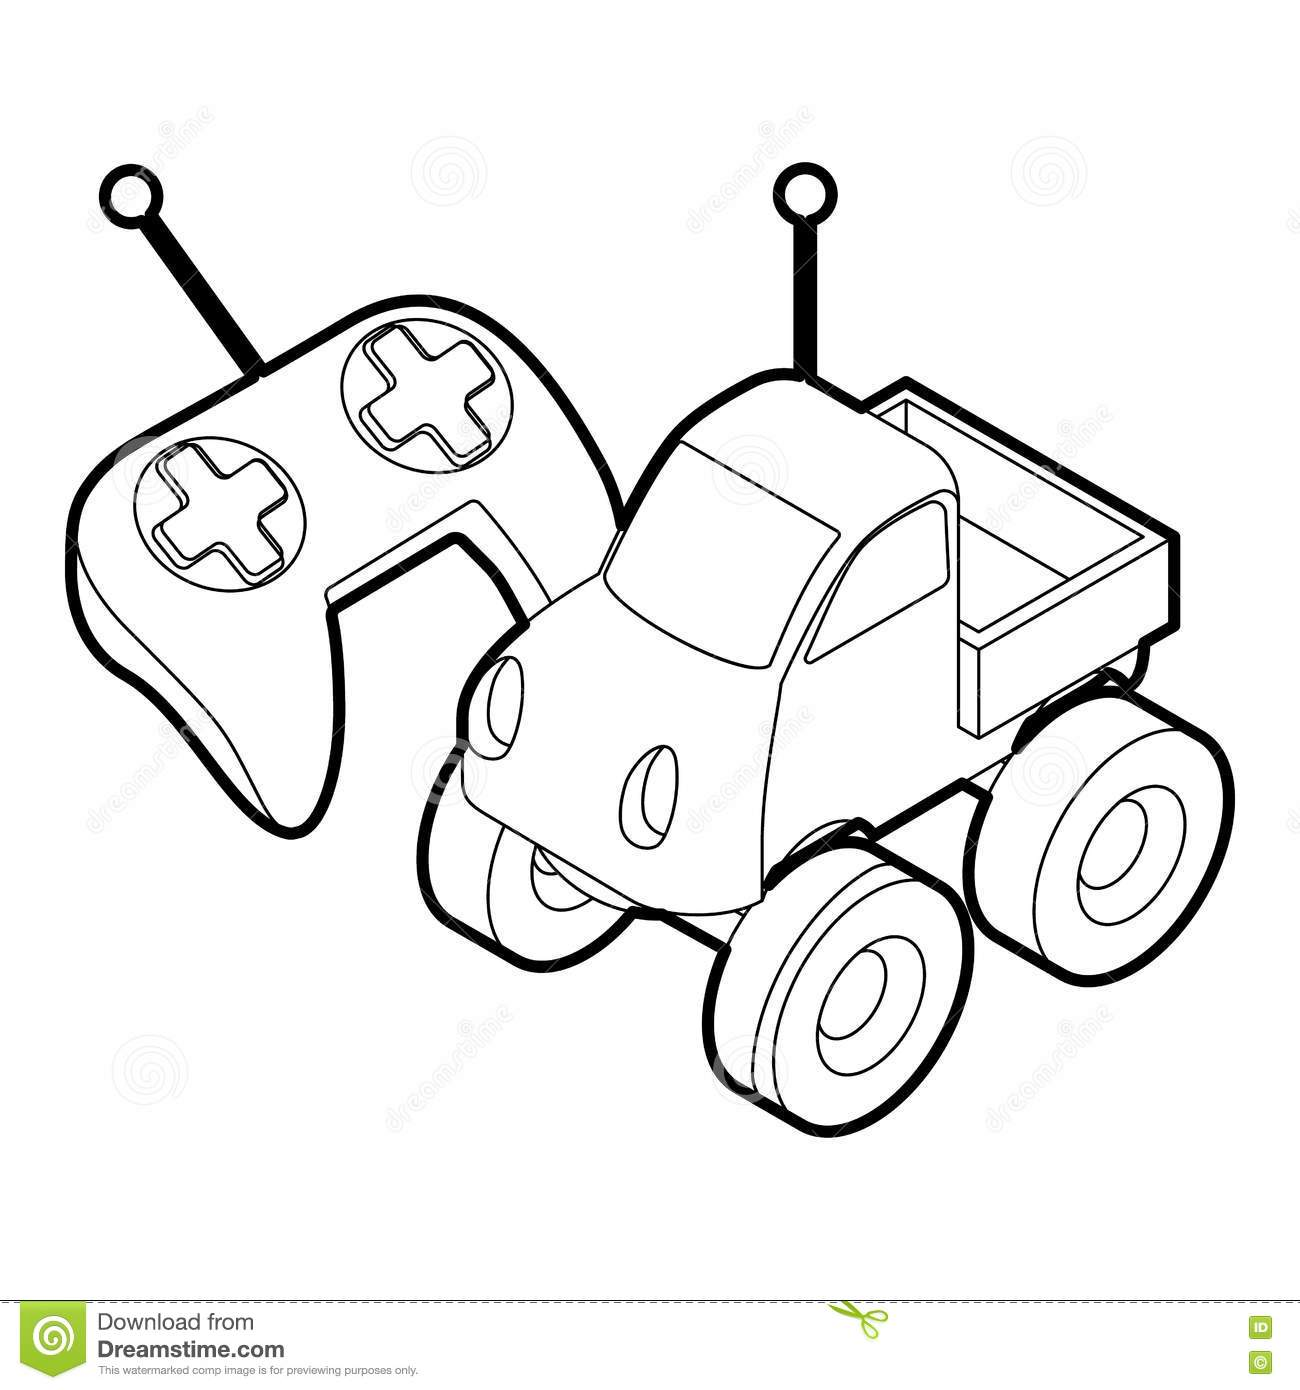 Control Remote Car Toy Outline Style Stock Vector